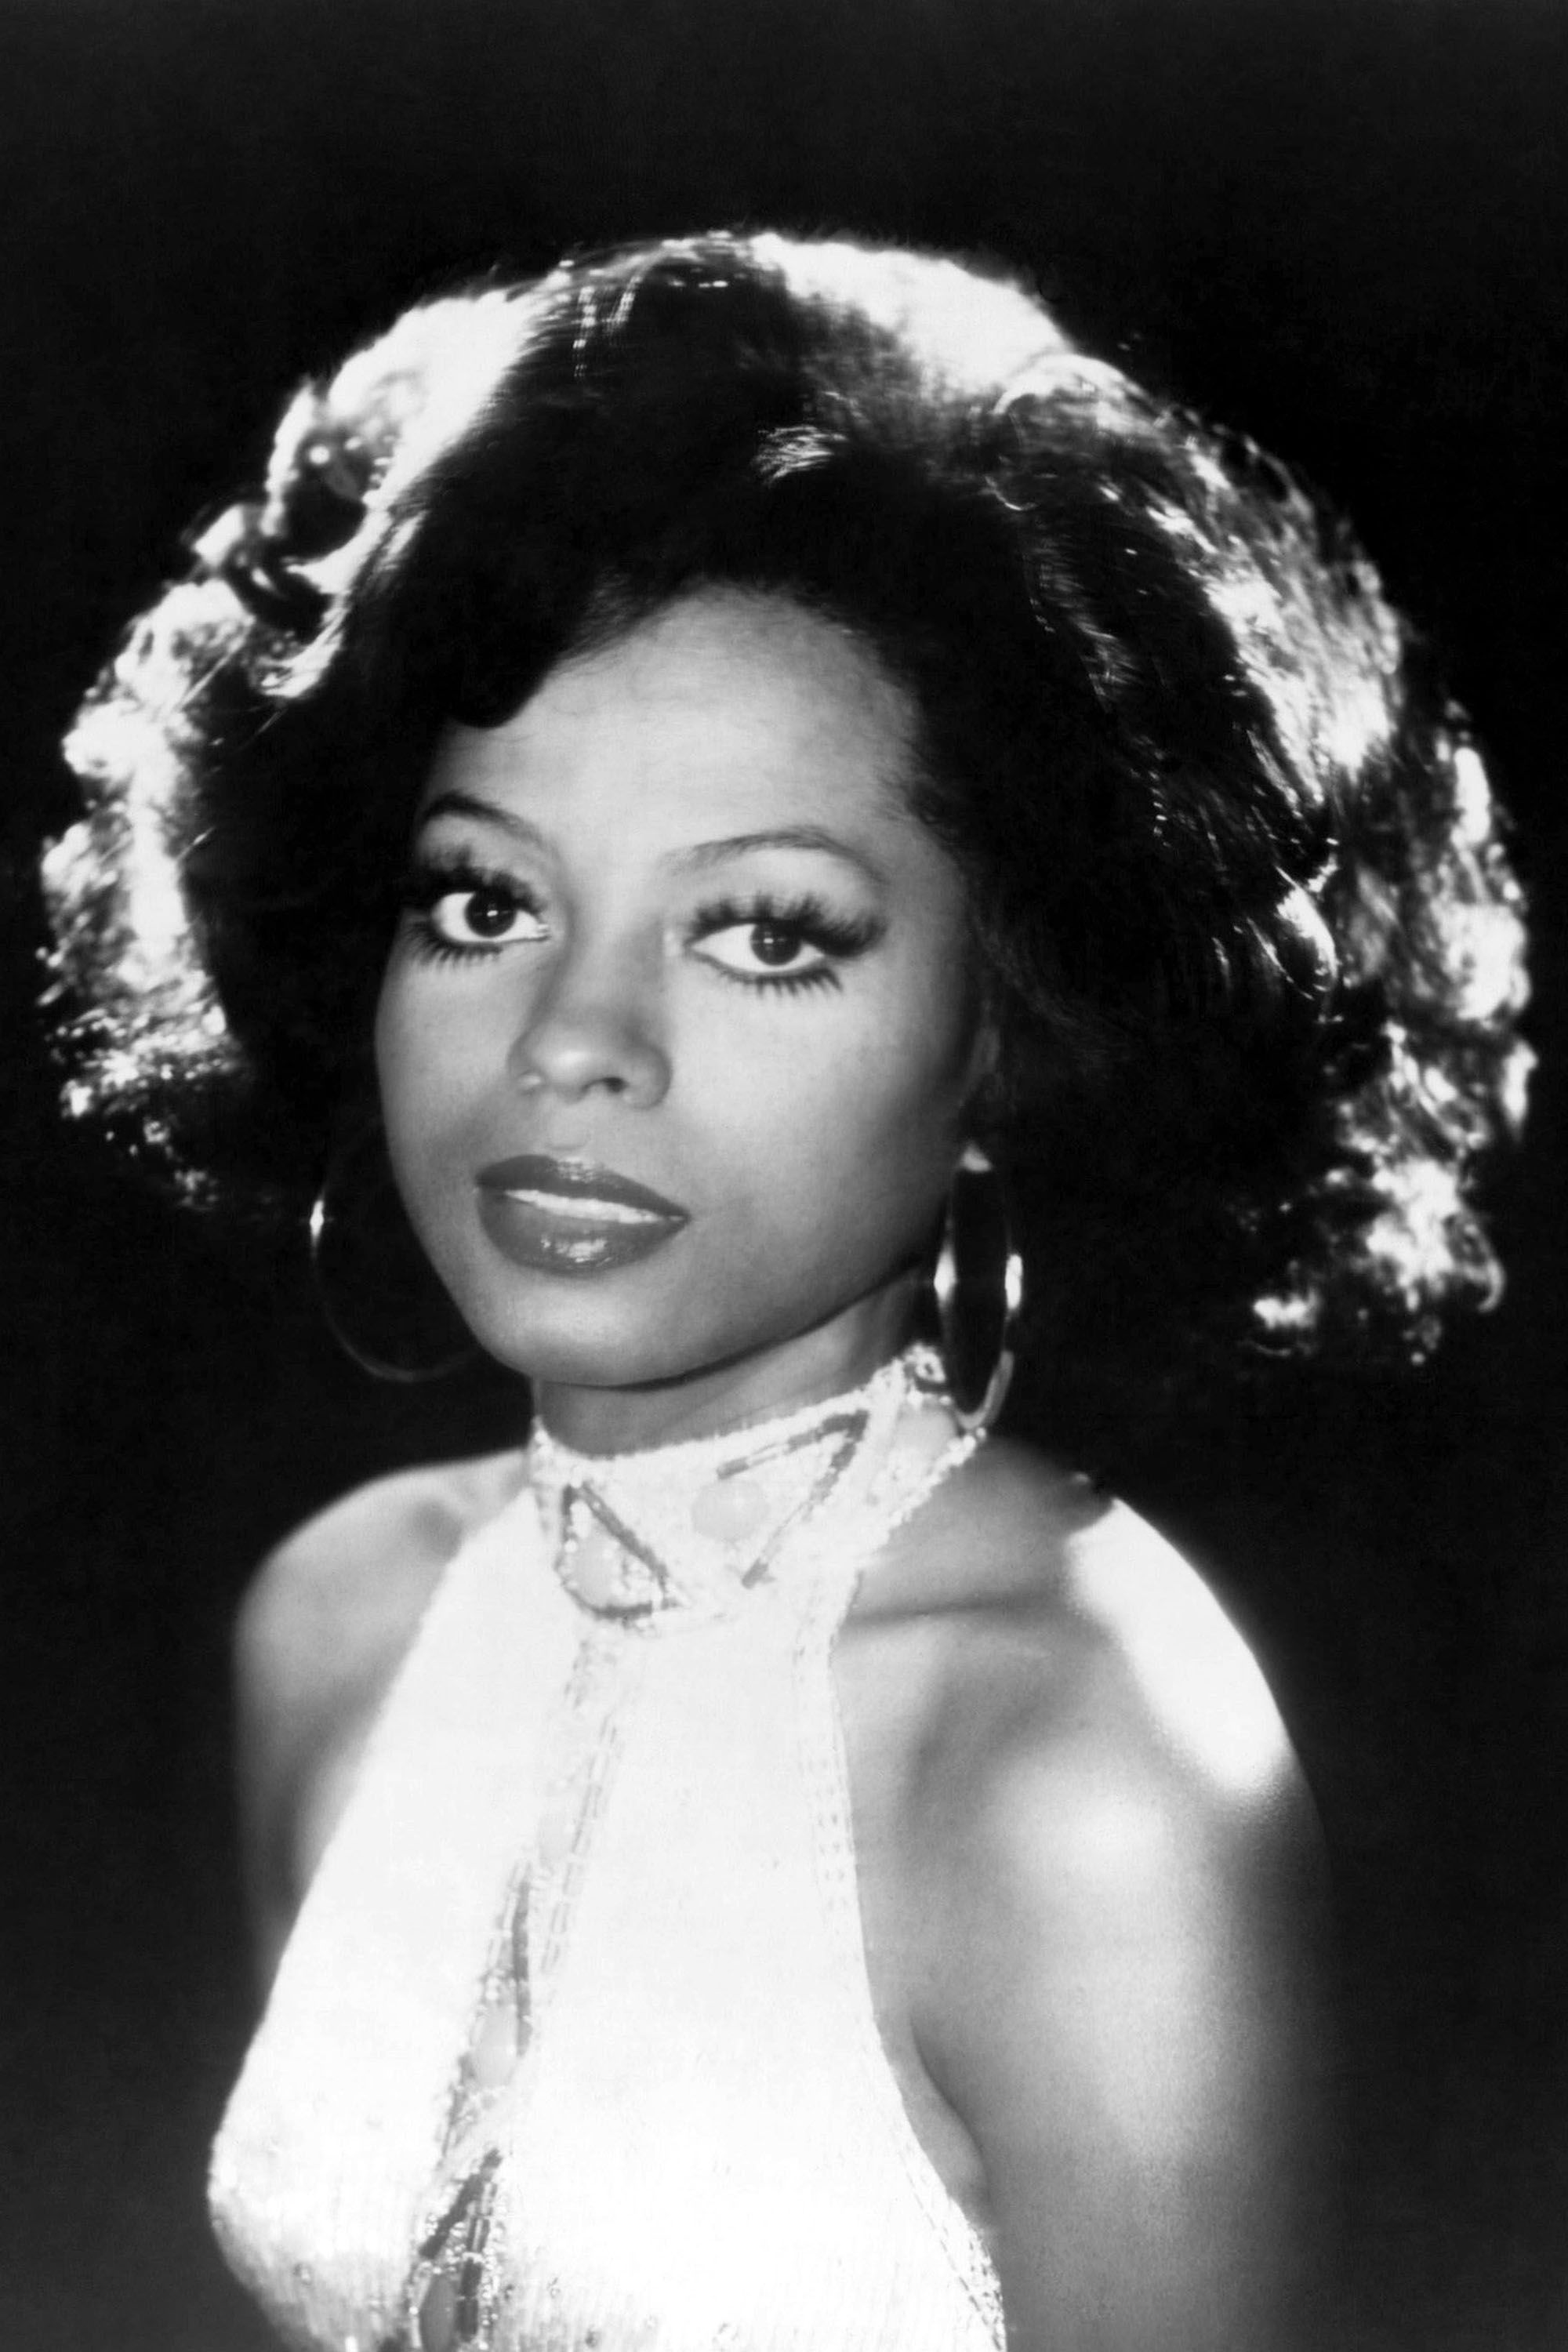 Diana Ross Discography >> diana ross images | Images HD Download